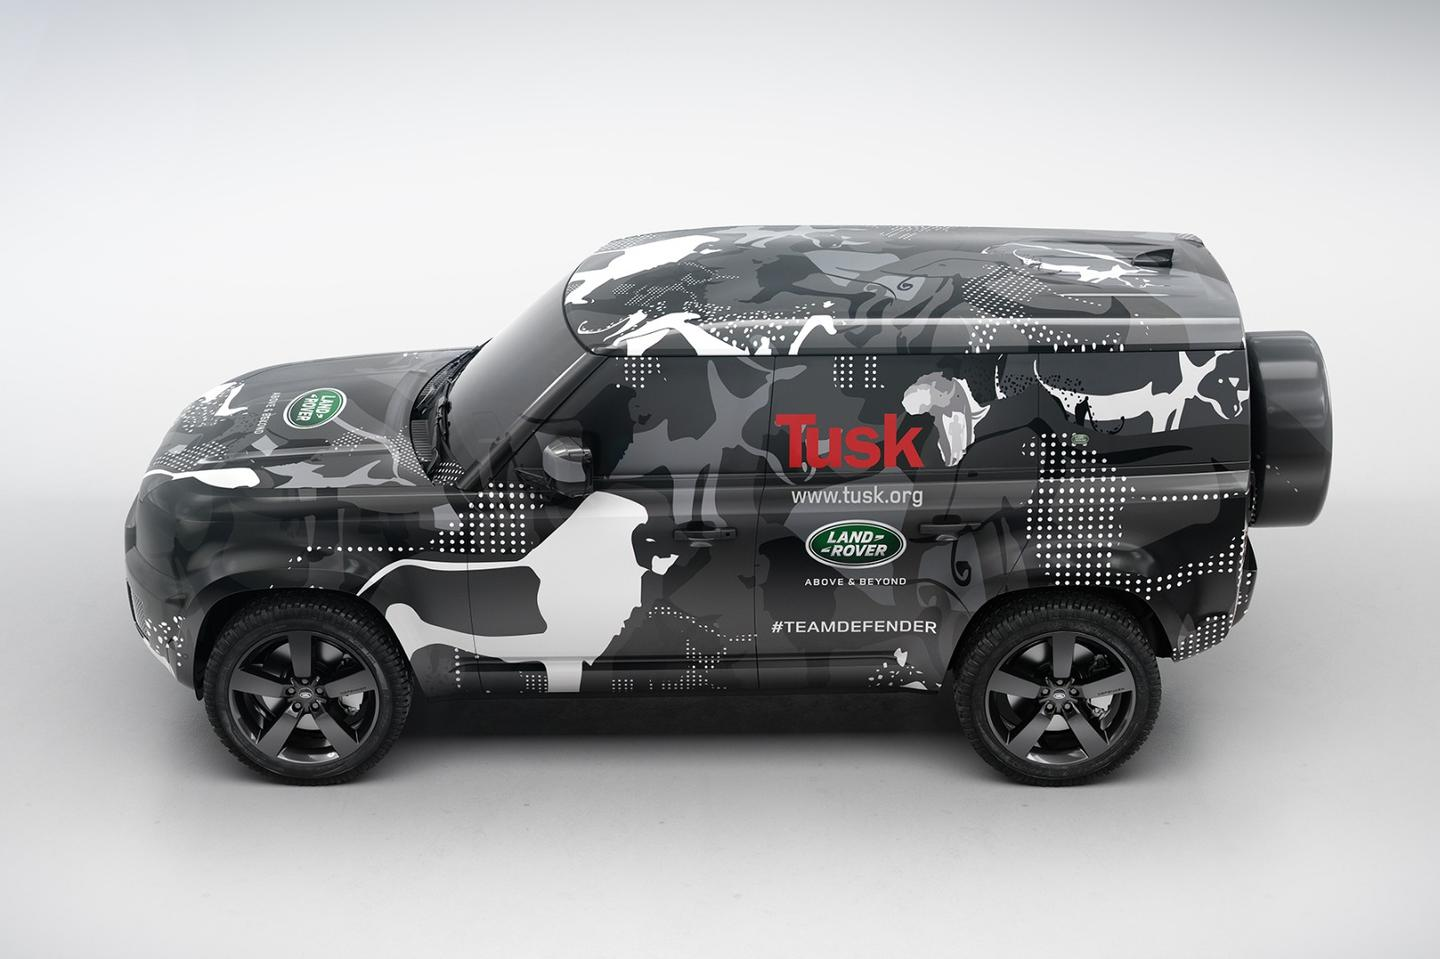 The prototype Land Rover Defender in its Tusk Trust livery